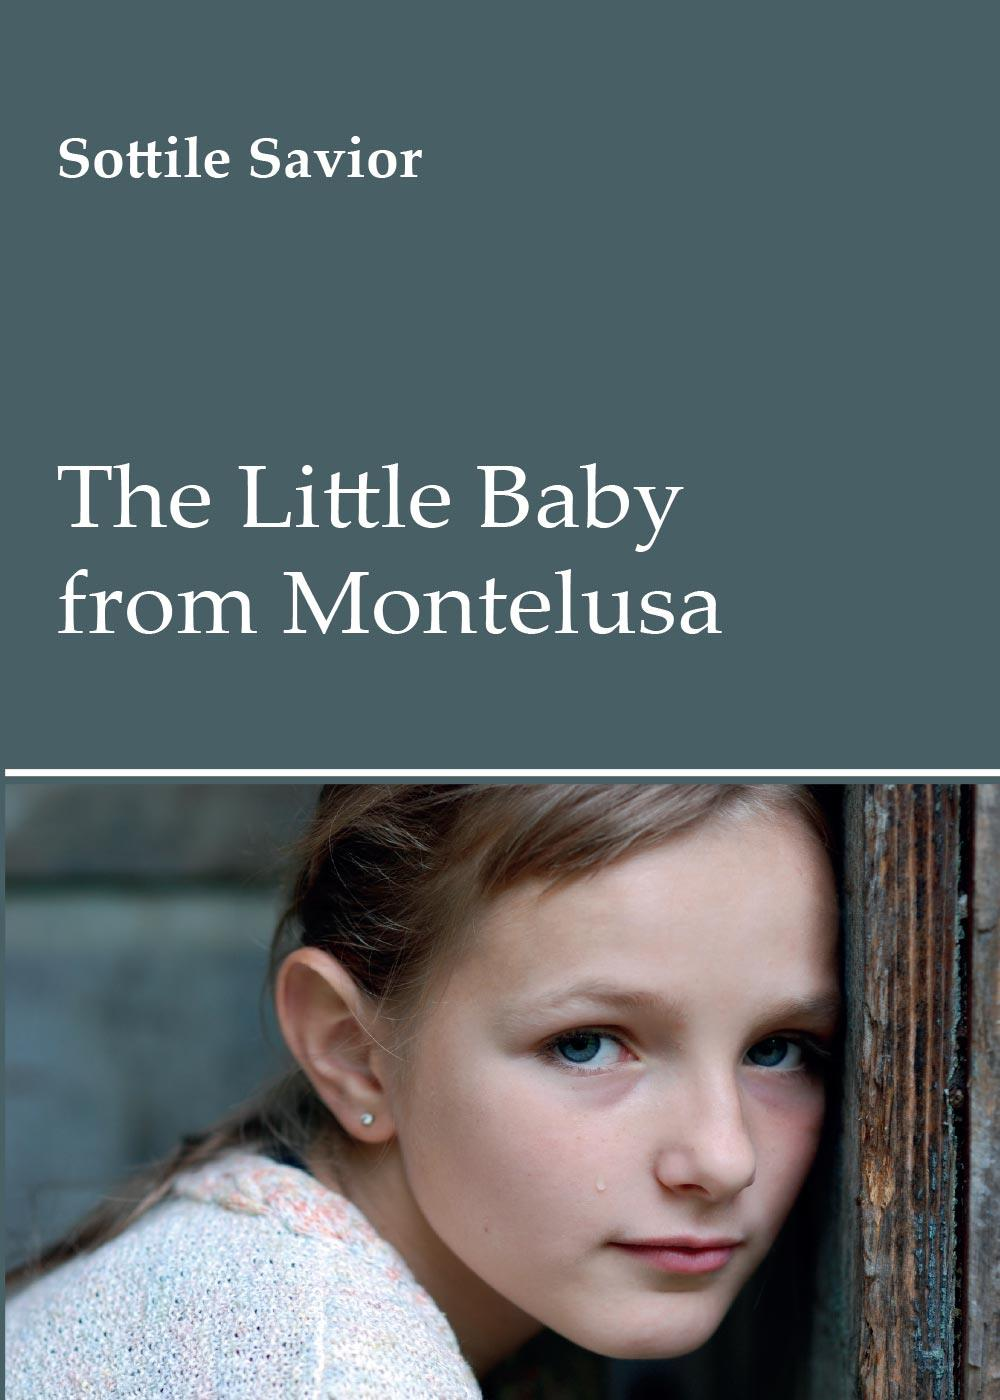 Little baby from Montelusa